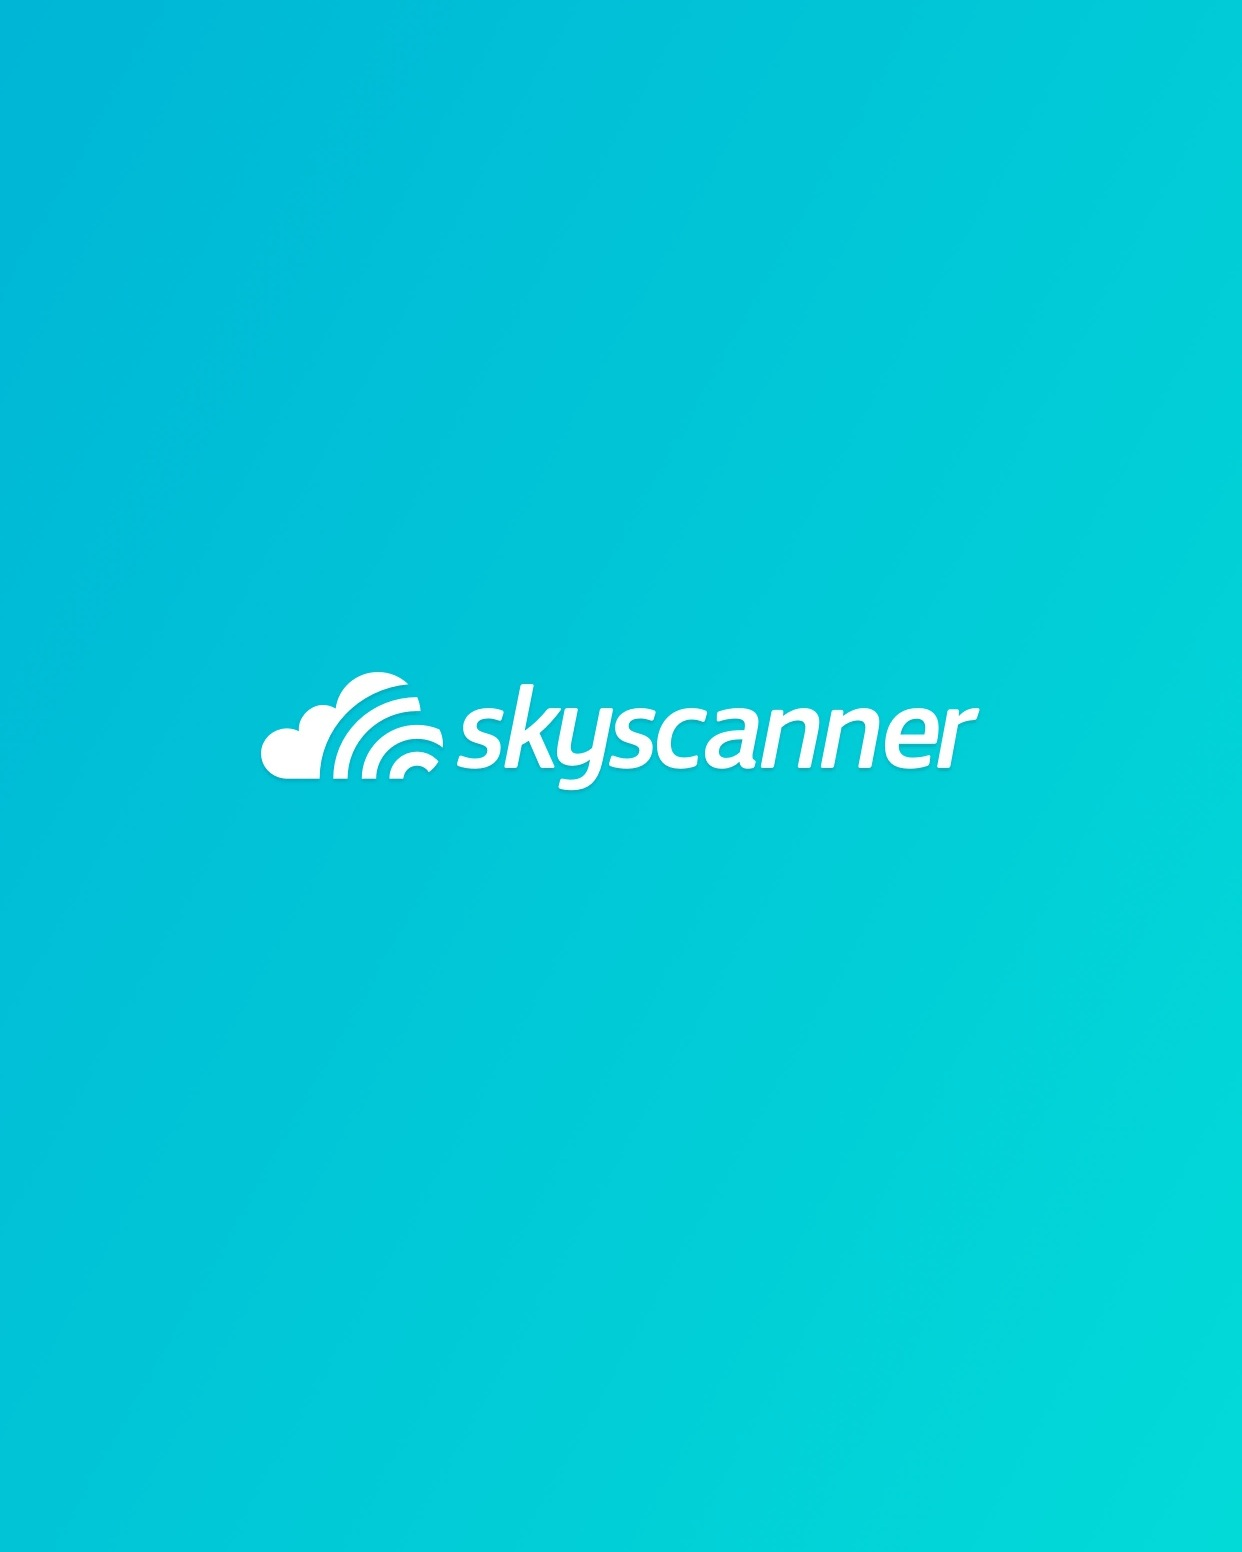 skyscanner: Searches many sites to get the best price available on flights, hotels, and car rentals. - This app is not a booking site, it redirects you to the booking site. Always check more than one search engine. You can set alerts for price changes and search by destination for travel anytime, certain dates, or months.